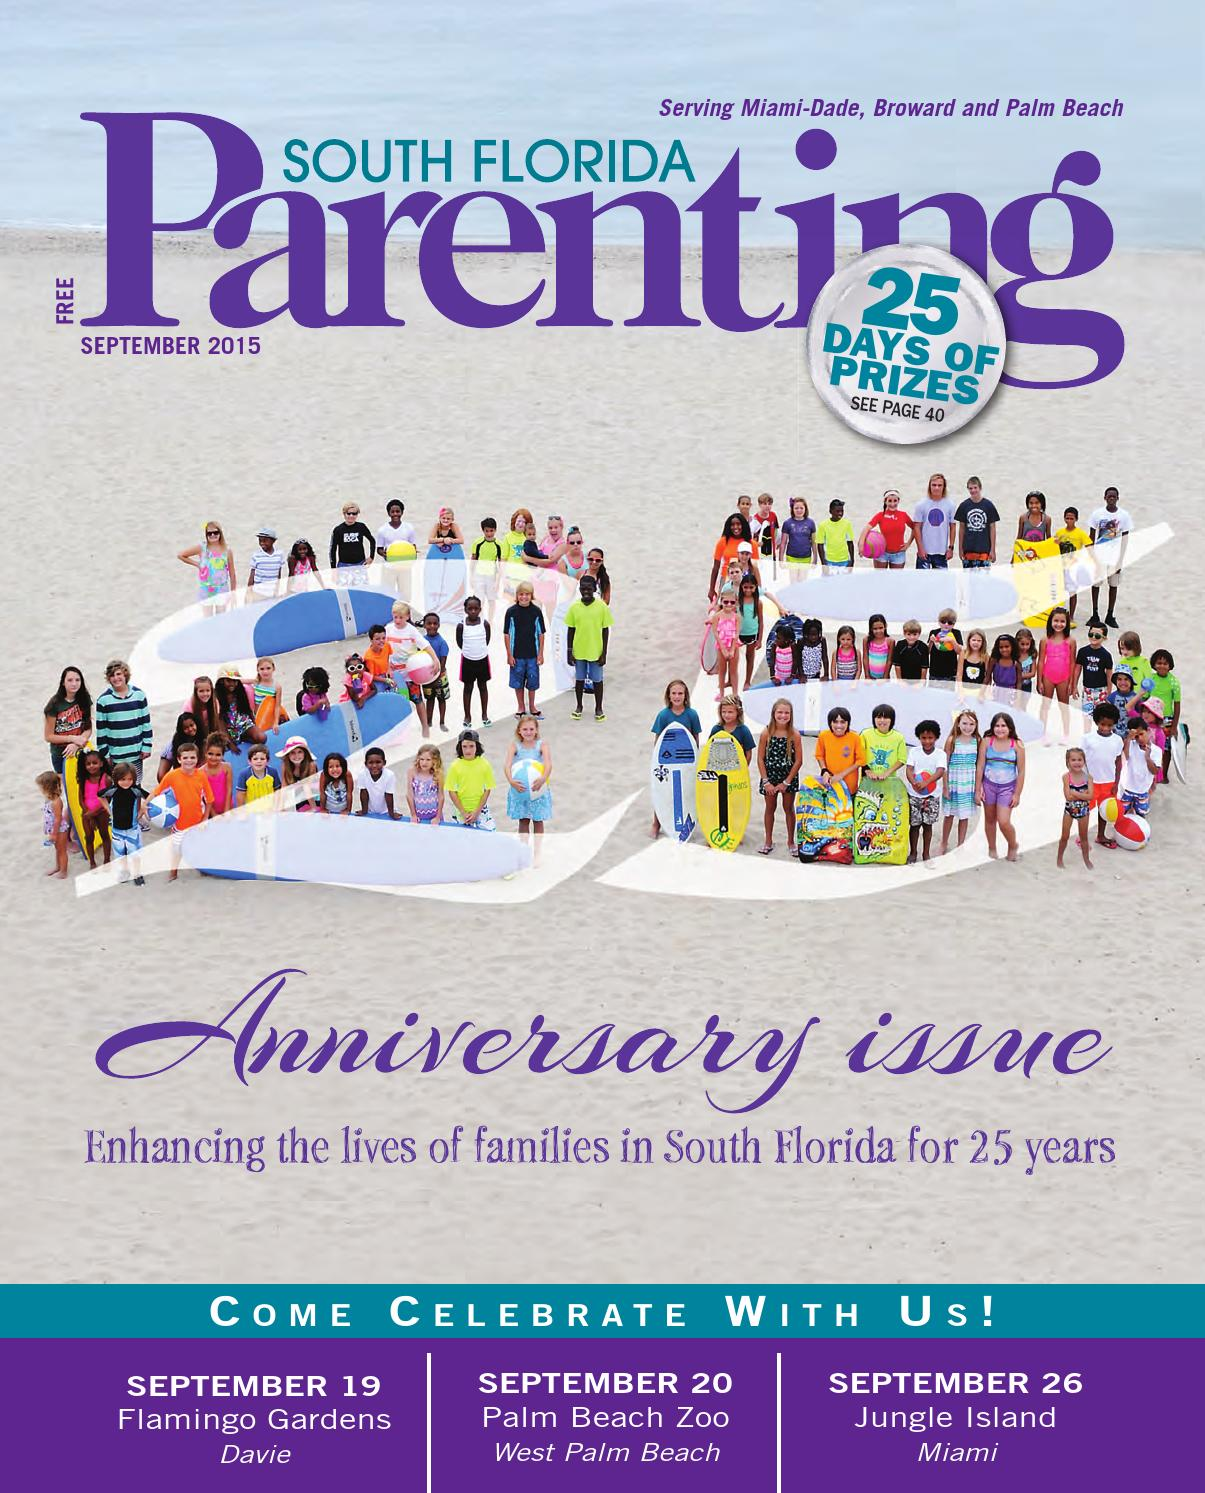 South florida parenting by forum publishing group issuu fandeluxe Gallery